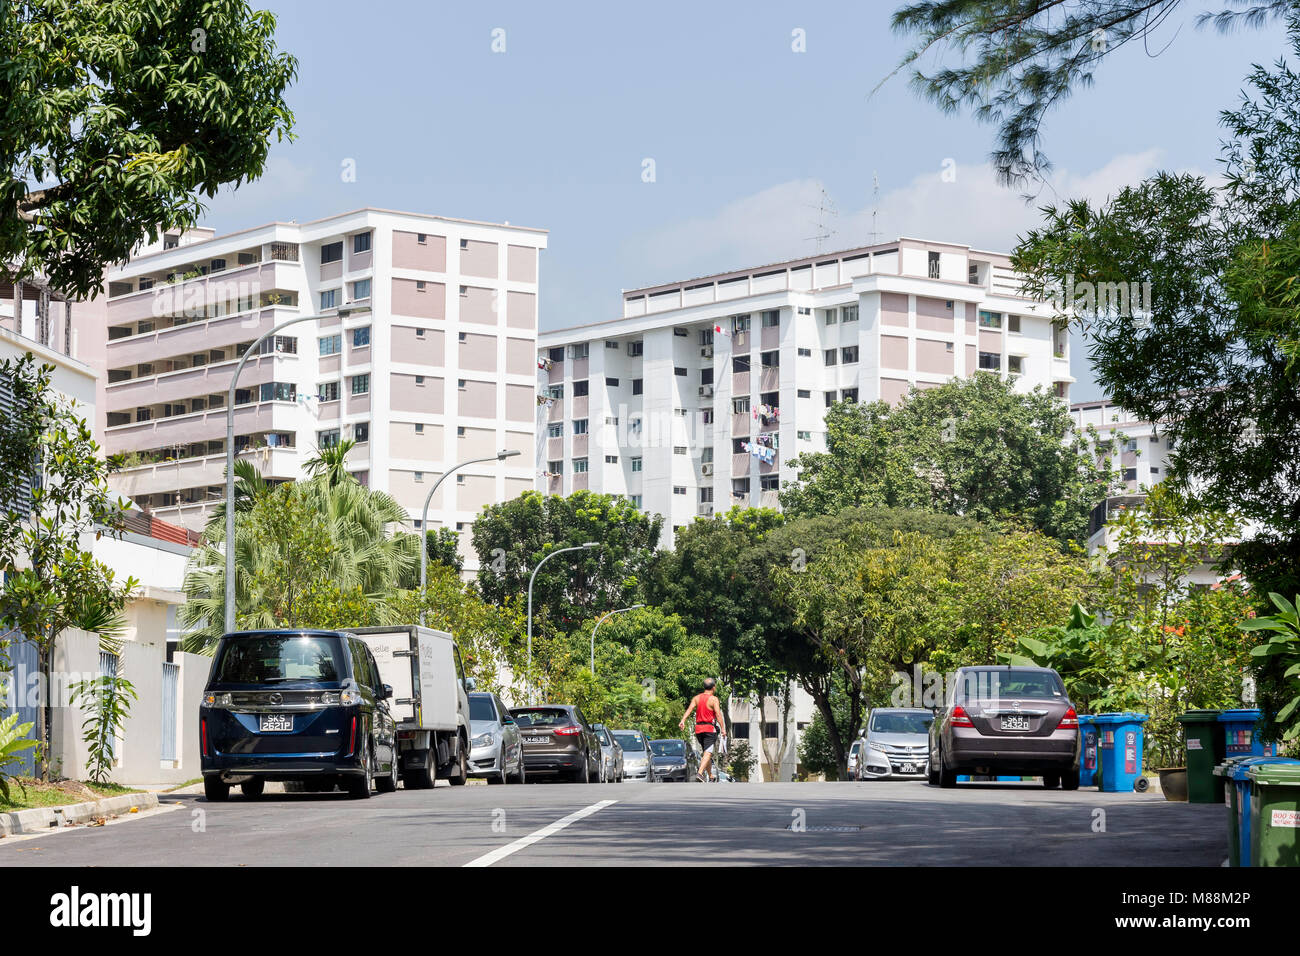 Residental high-rise apartments, Serangoon, North-East Region, Singapore - Stock Image